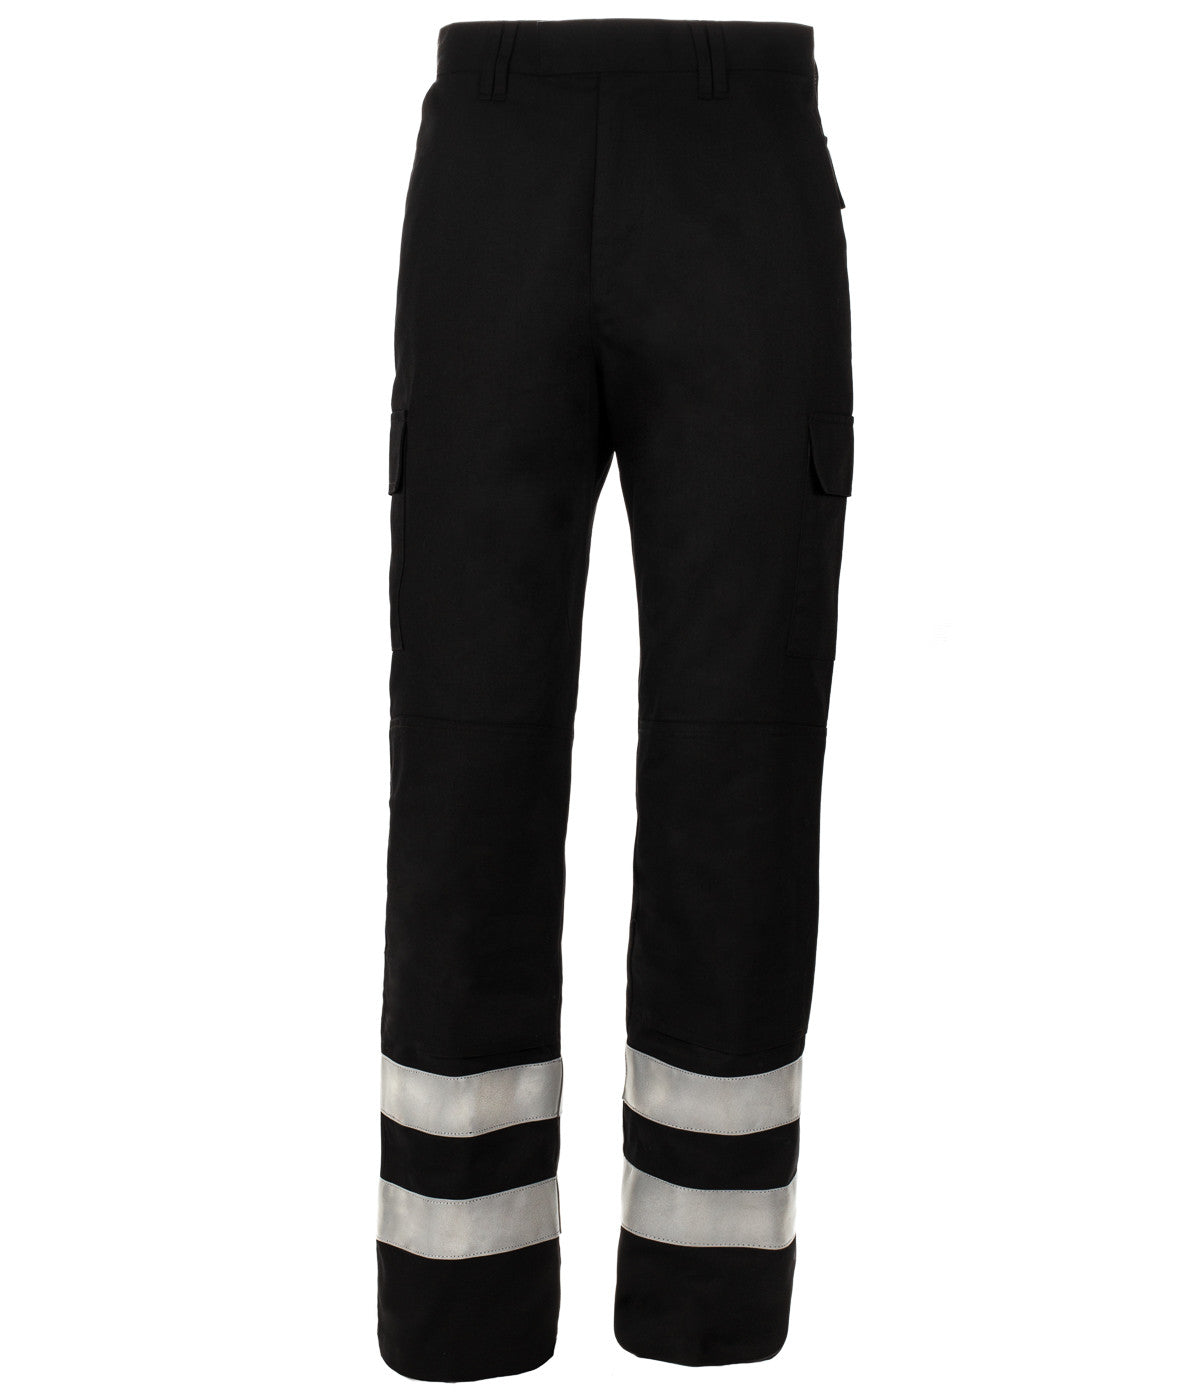 T39 Kneepad Cargo Trousers with Reflective Tape